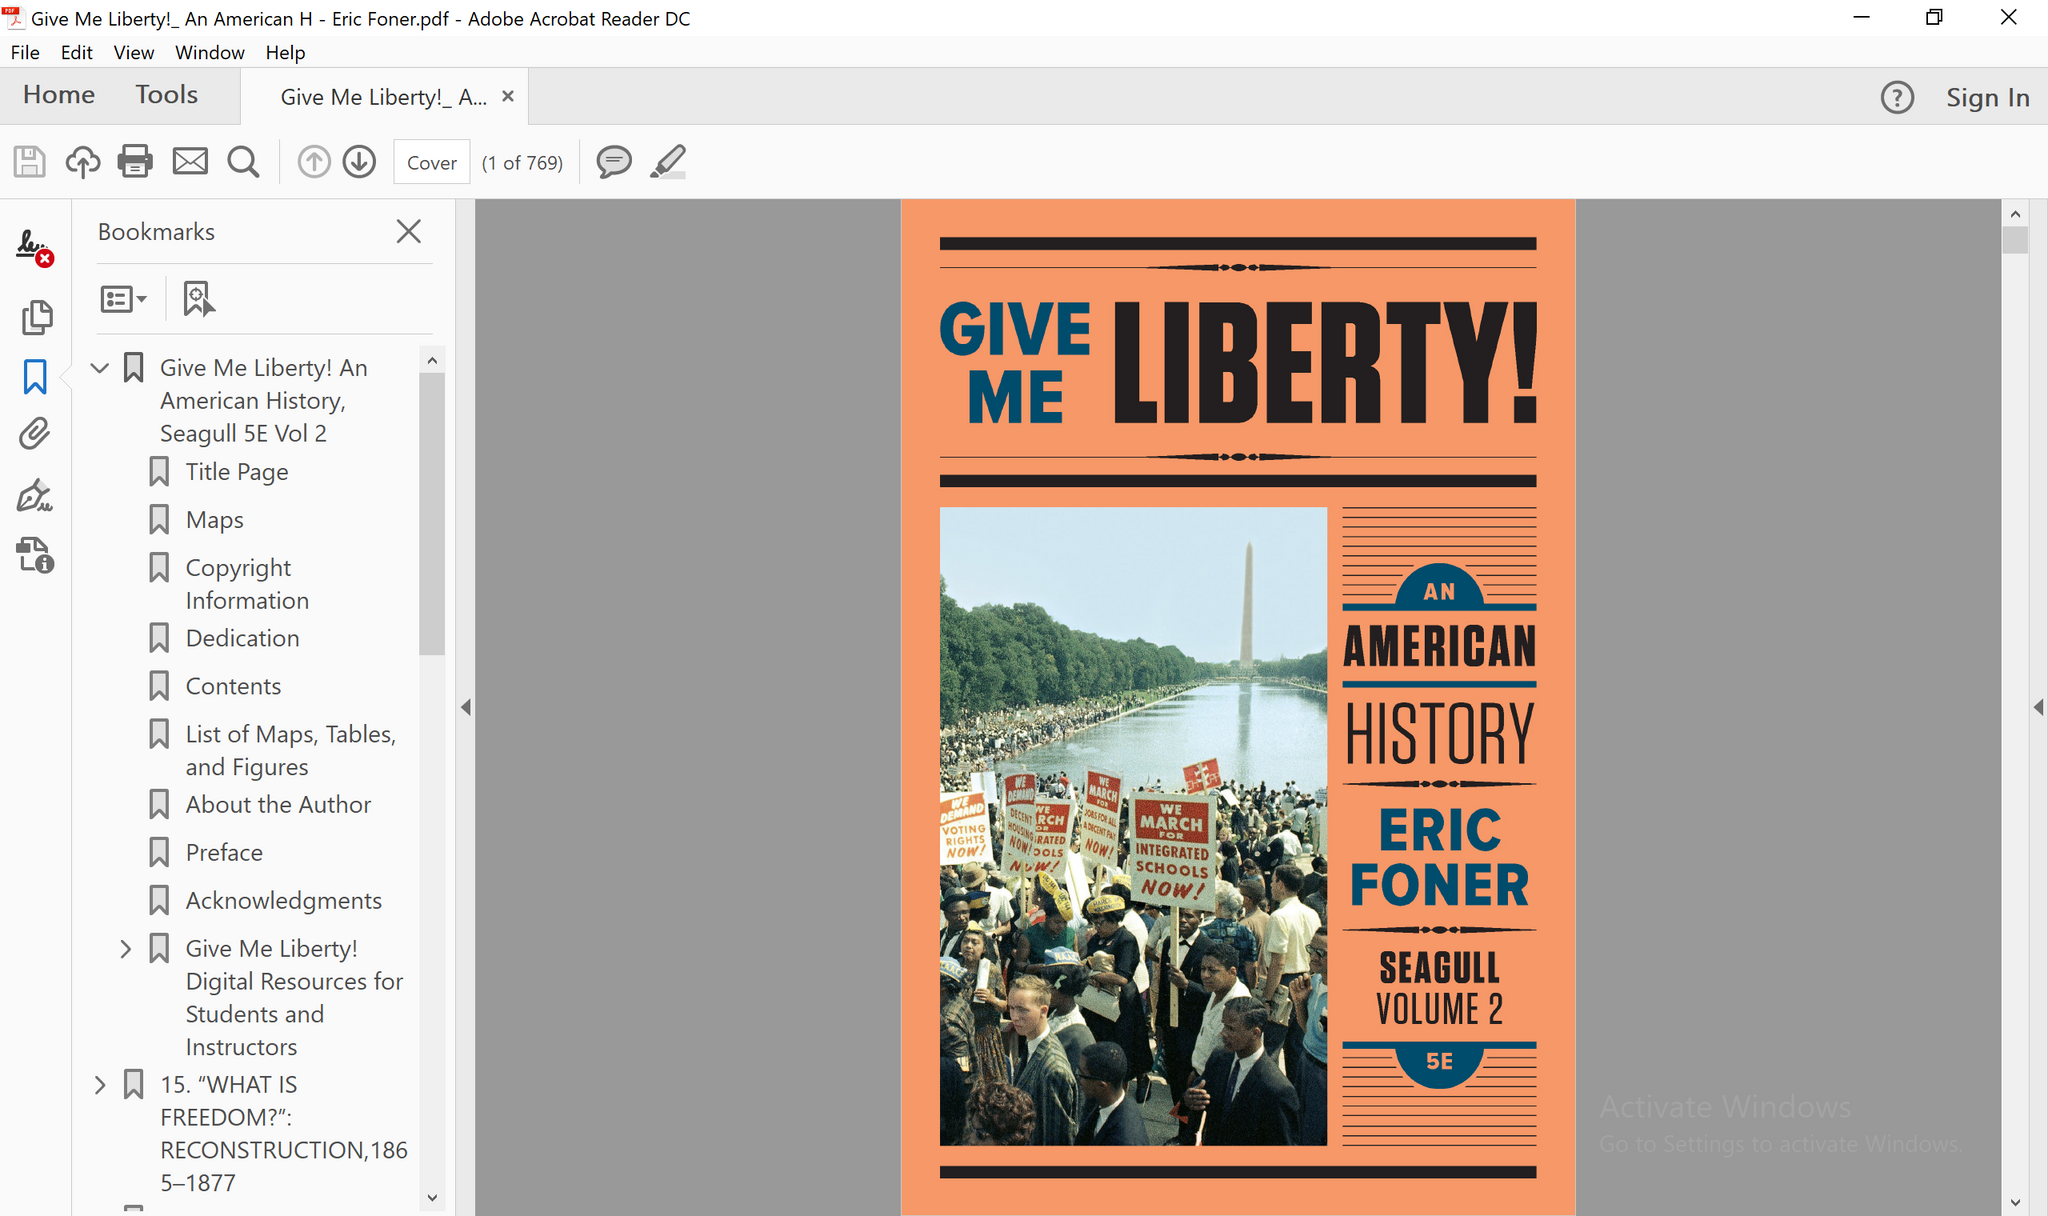 Give me liberty an american history seagull fifth edition vol 2 2 pdf give me liberty an american history seagull fifth edition vol 2 pdf fandeluxe Image collections